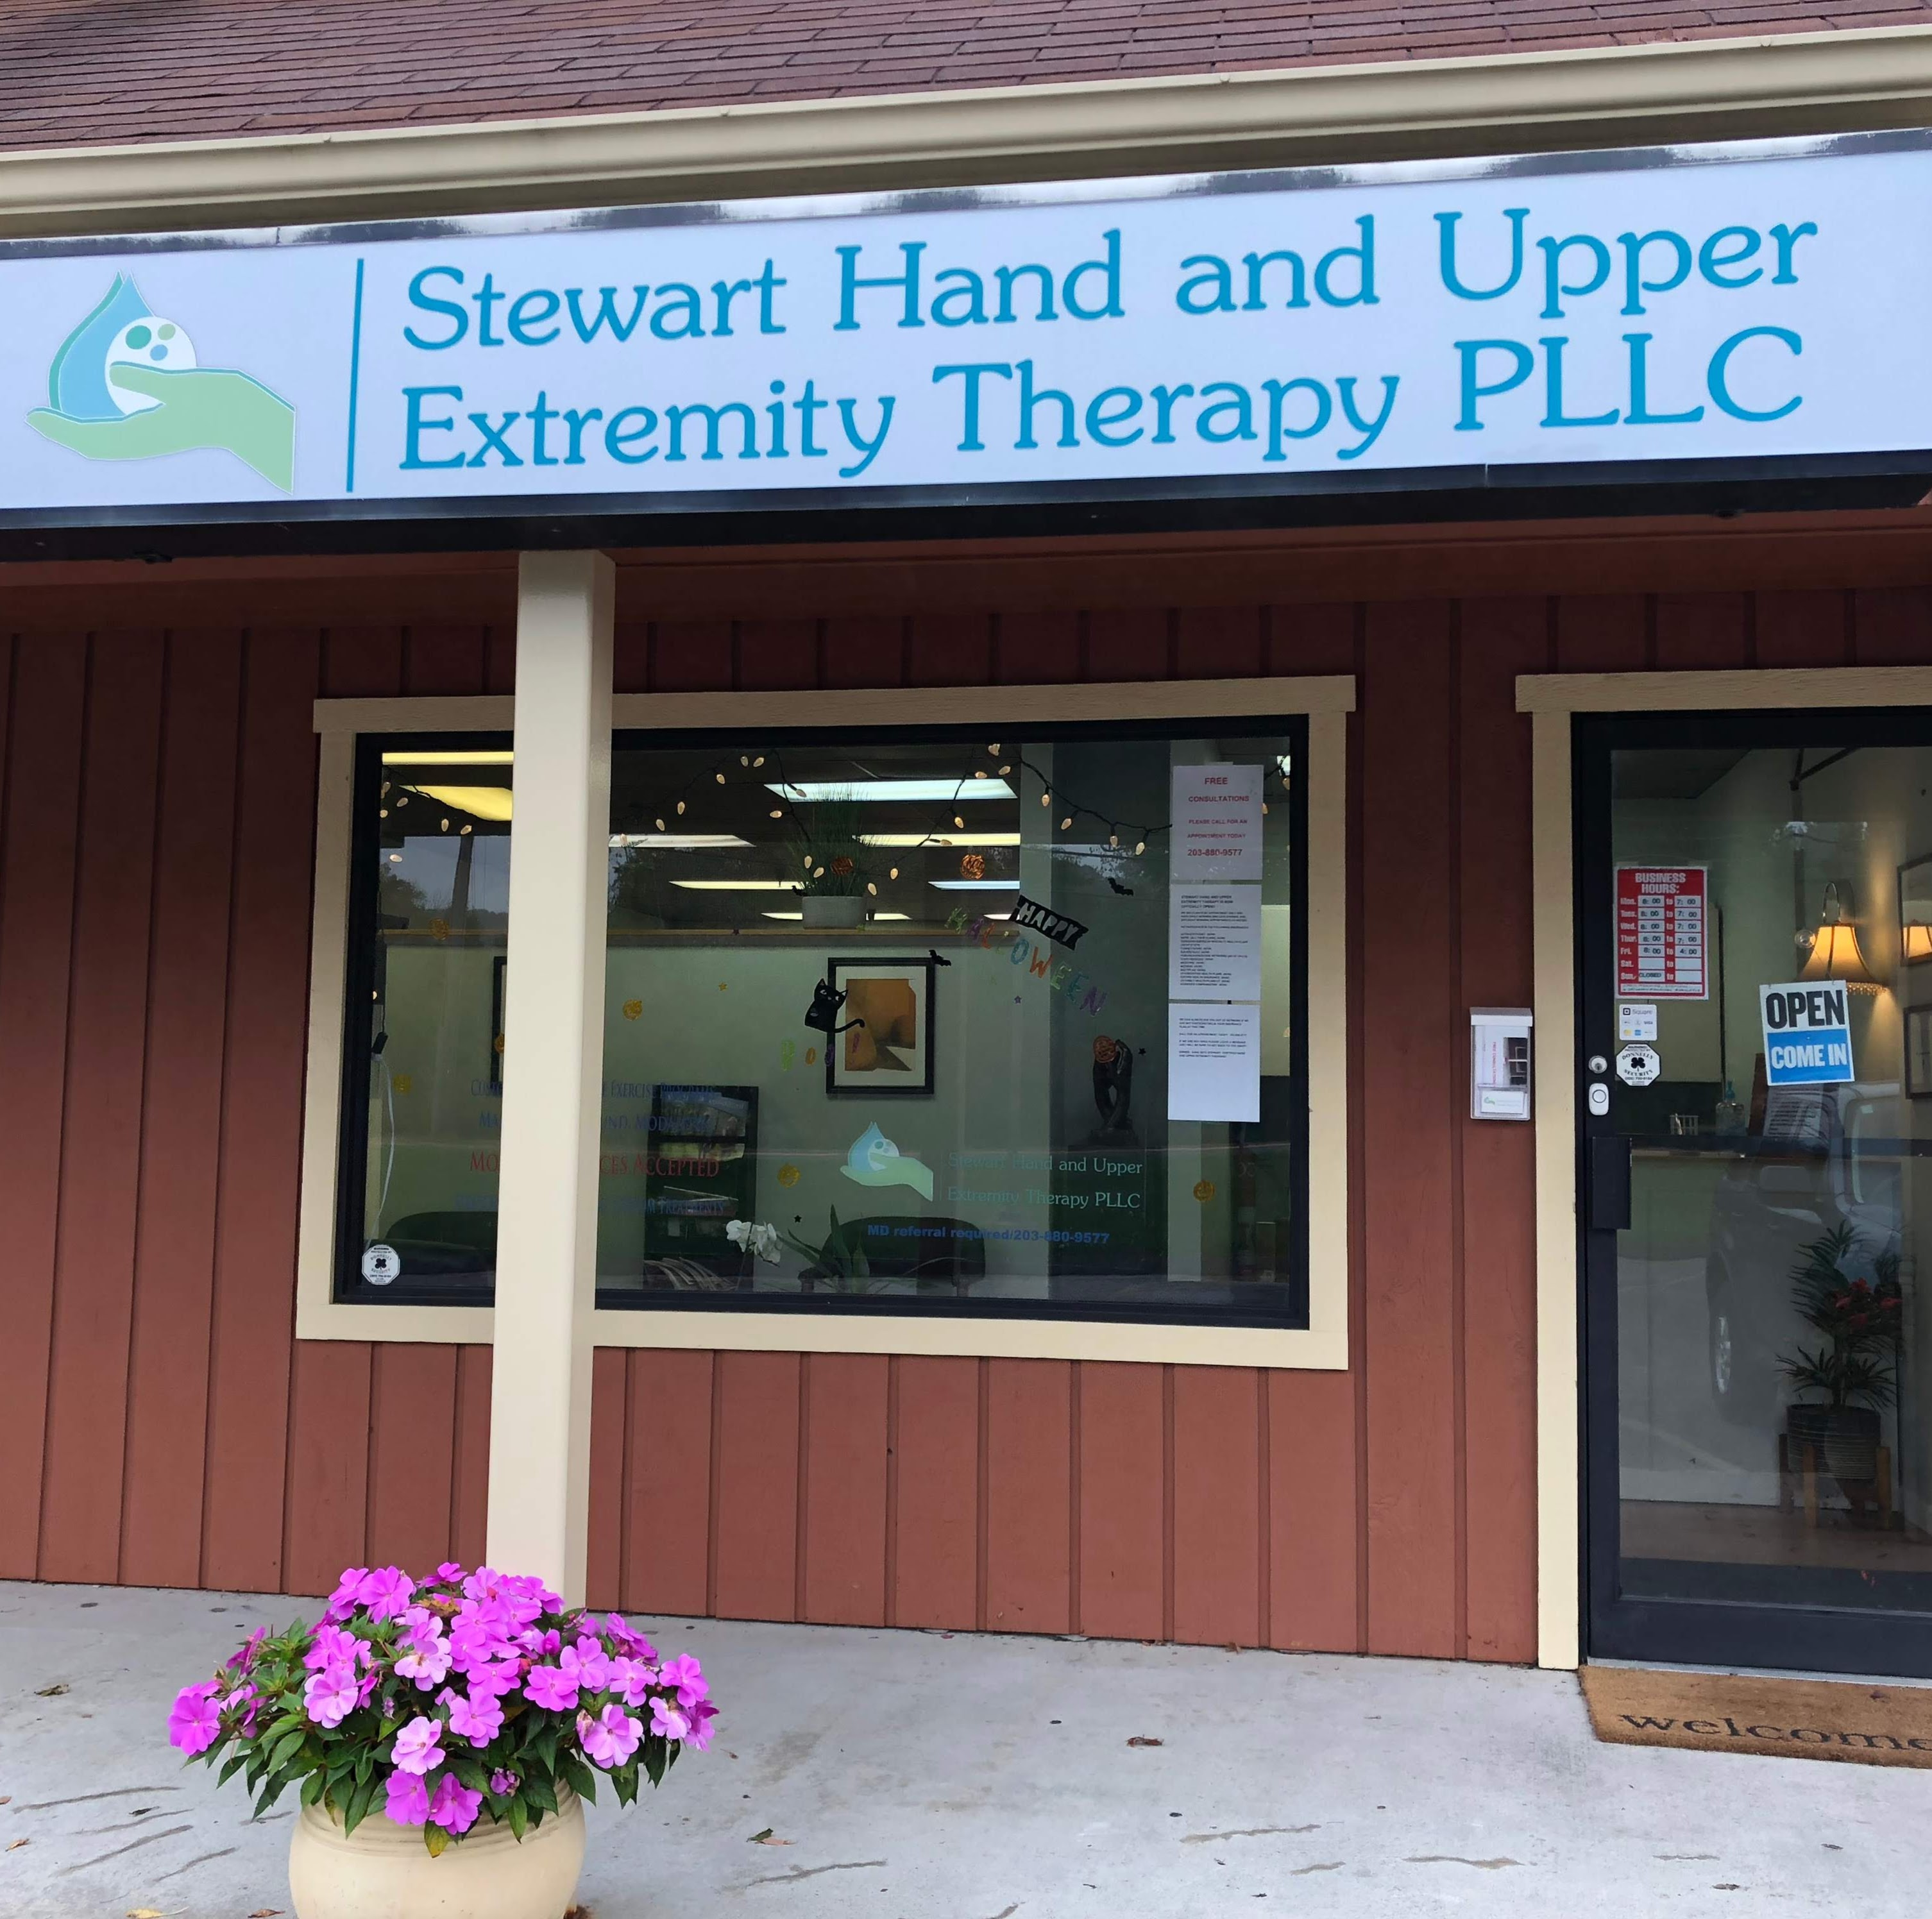 Stewart Hand and Upper Extremity Therapy PLLC